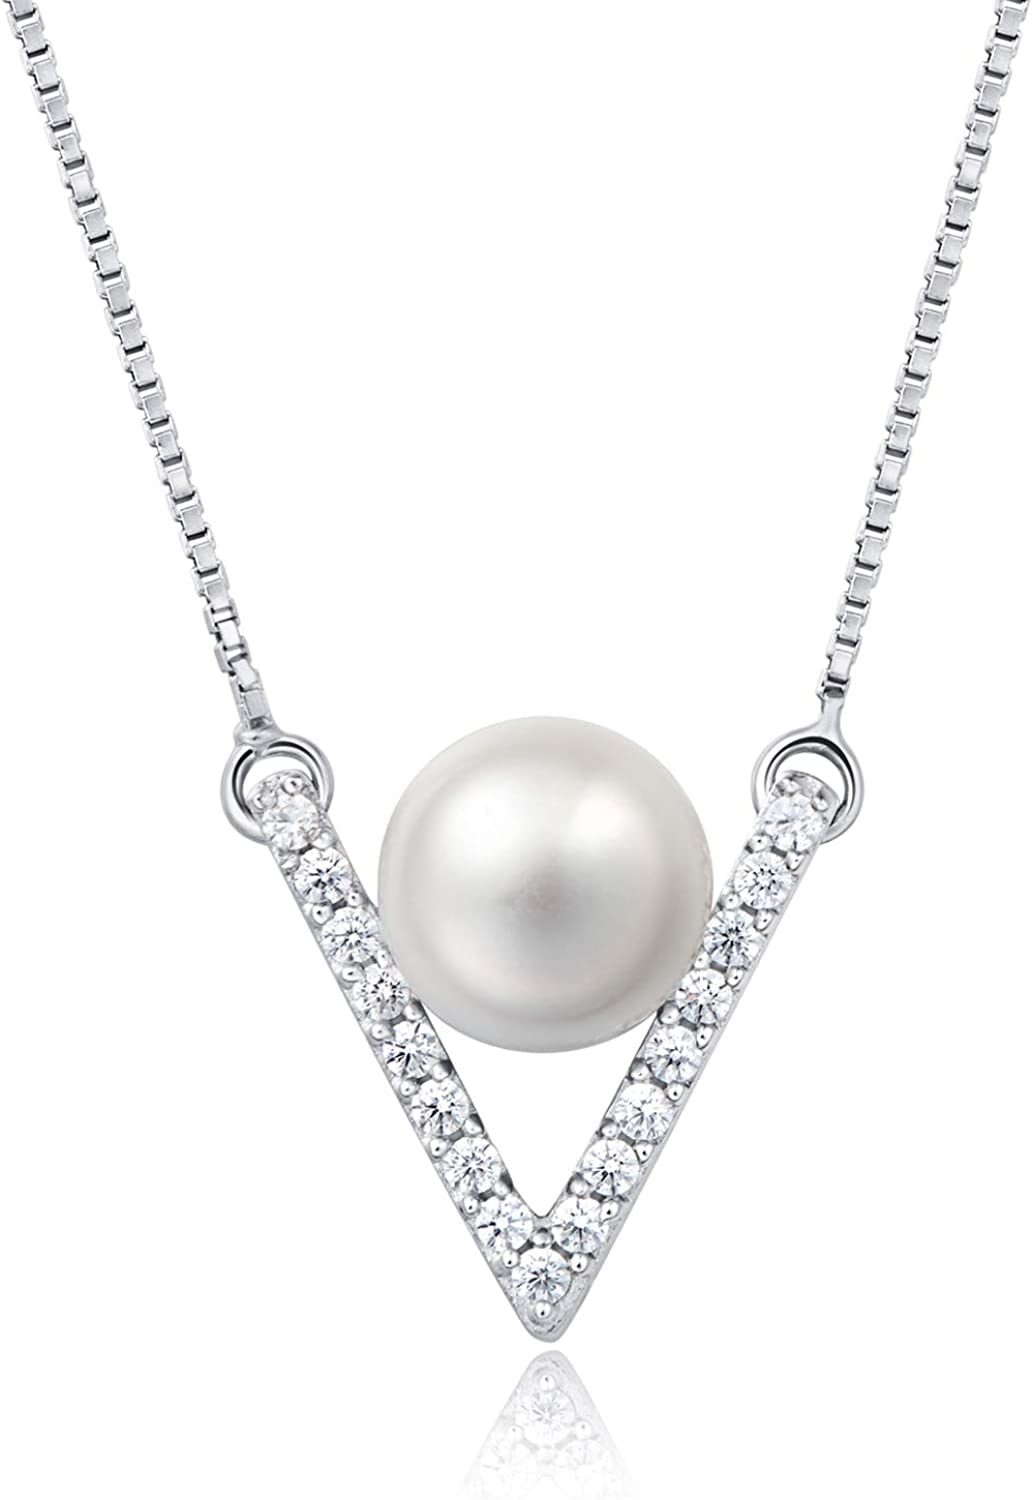 Molah 925 Silver Cultured Freshwater Pearl and Cubic Zirconia Chevron Necklace